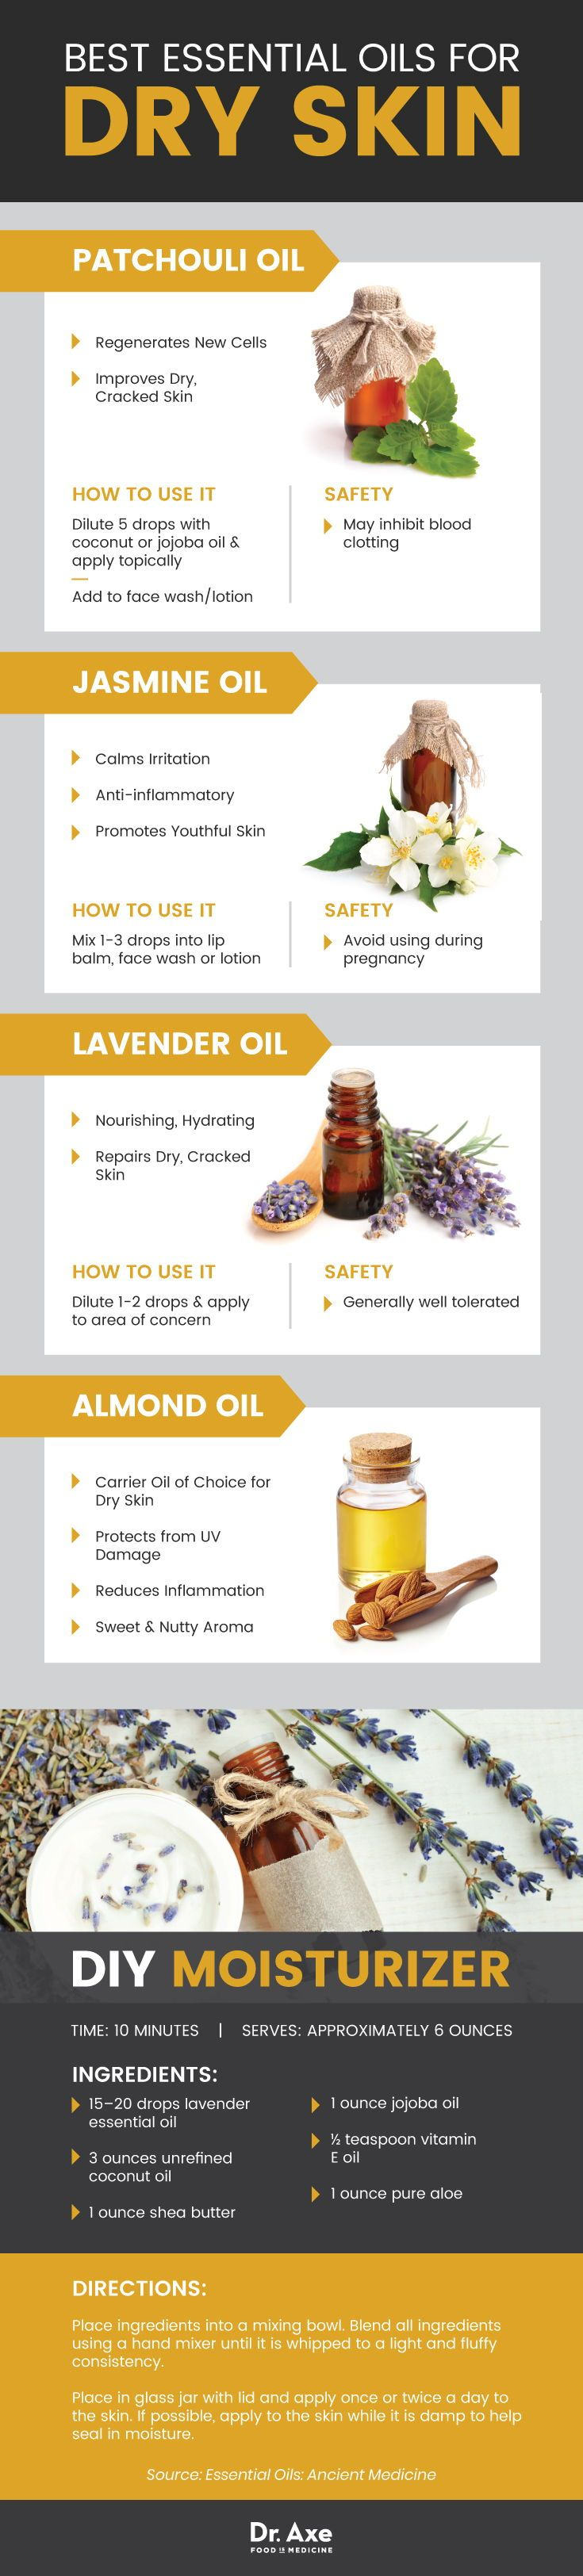 Suffering from dry skin? These essential oils can help. Click to find effective essential oils for dry skin, the flu and other winter ailments.